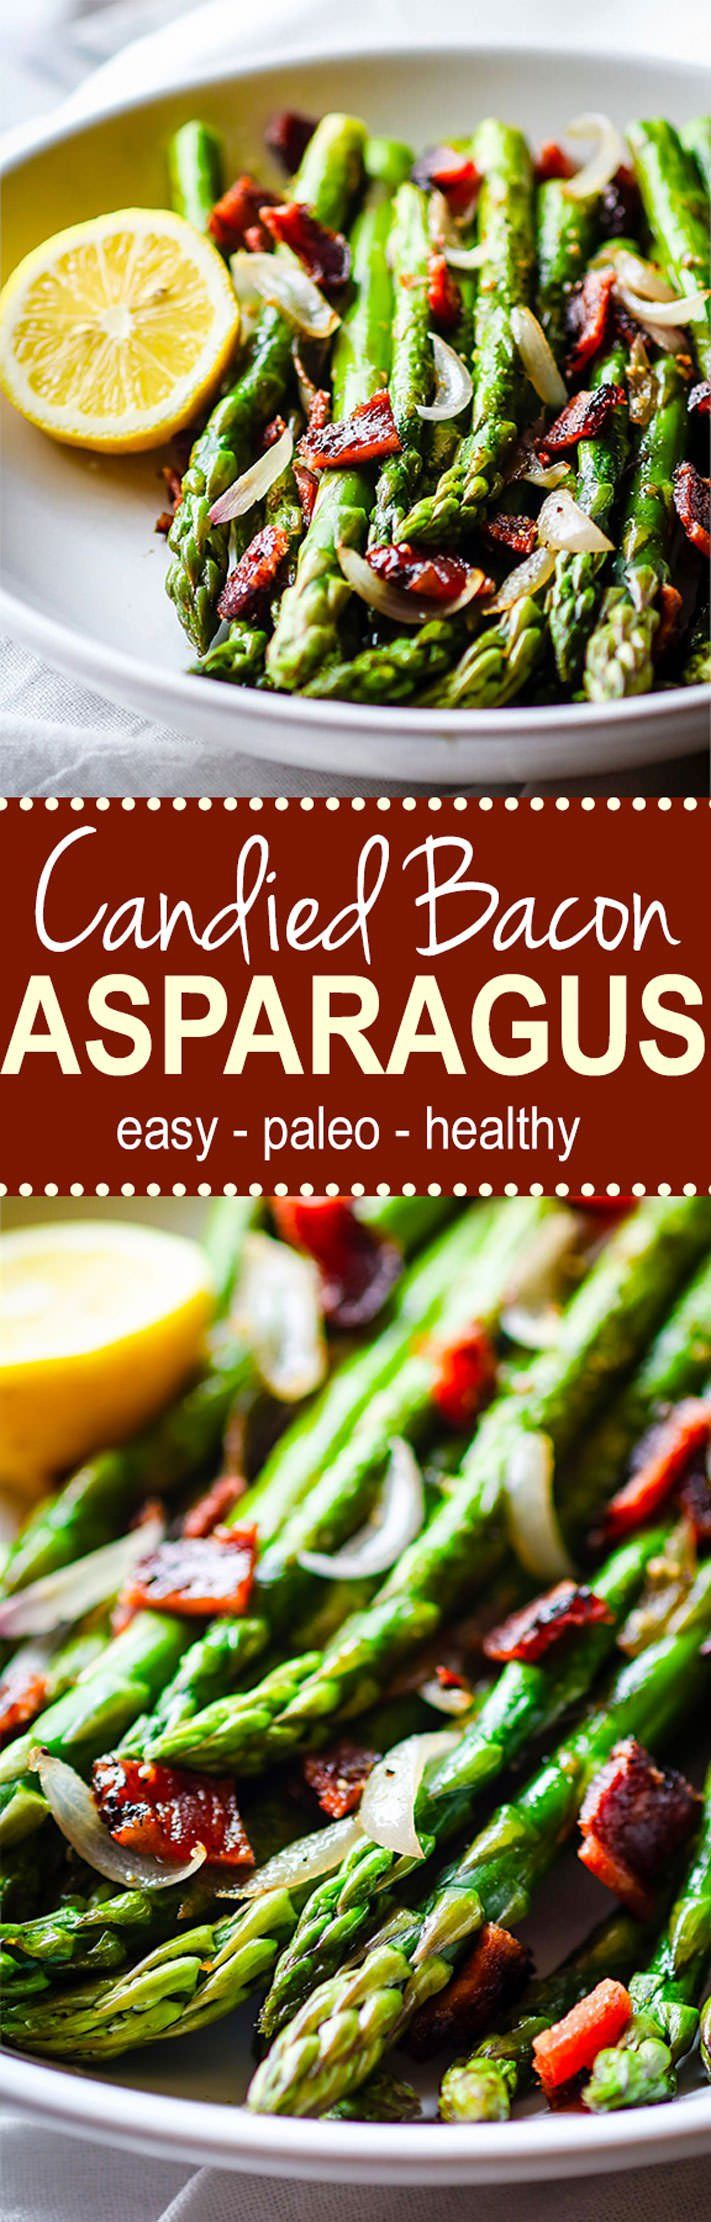 Easy Peppered Candied Bacon and Asparagus It's paleo gluten free and super simple to make! Bacon and Asparagus